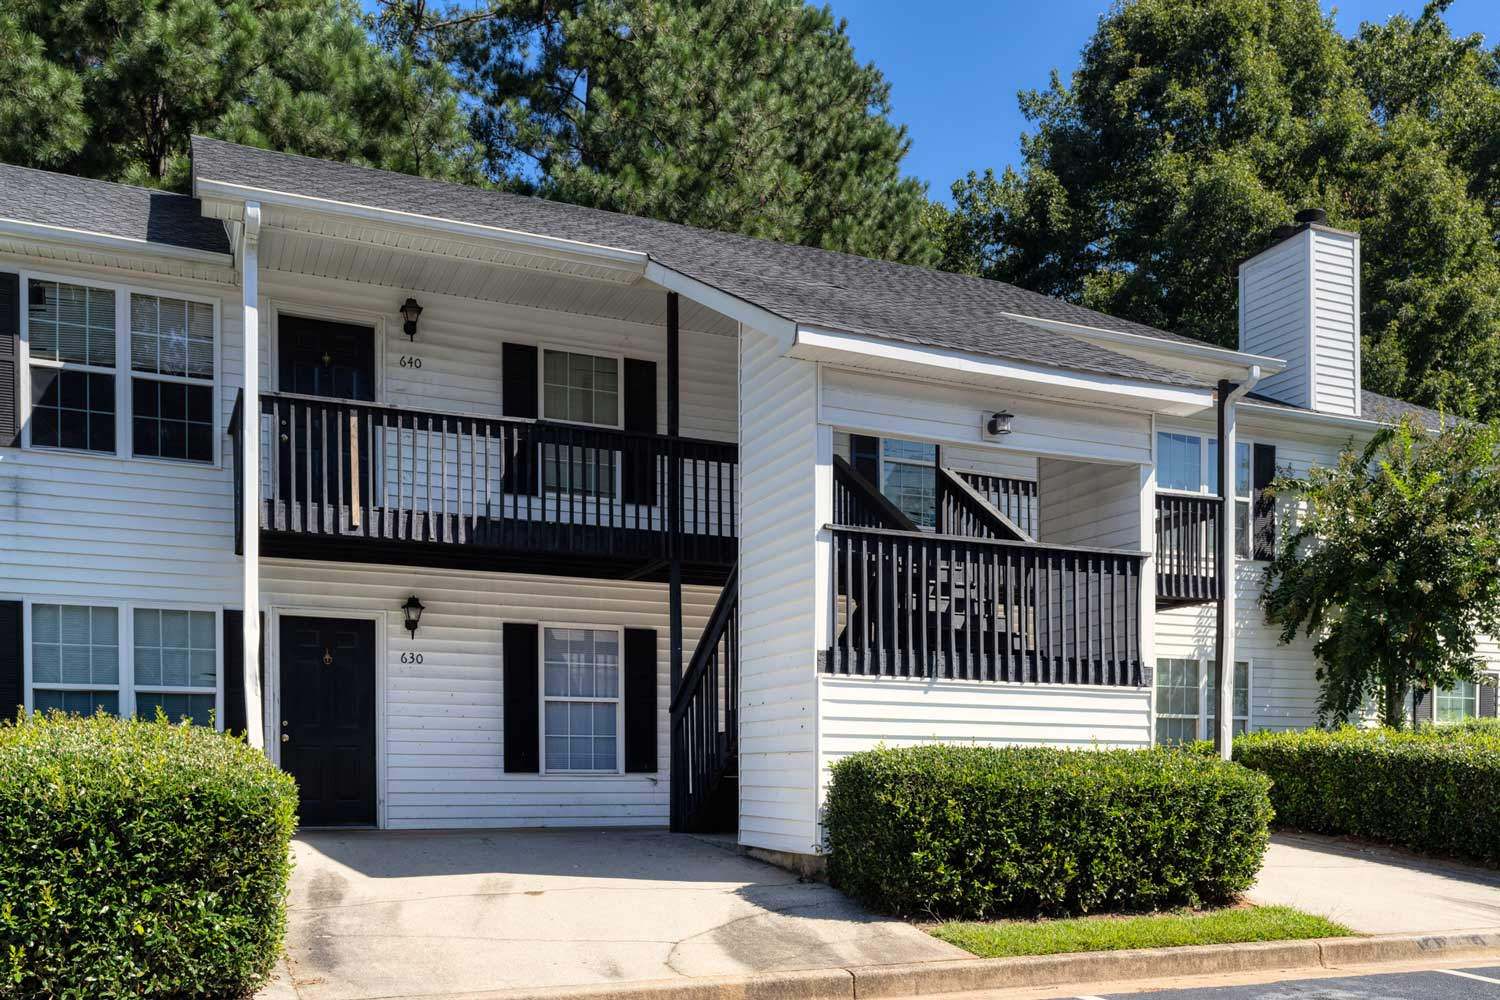 Two Bedroom Apartments at Tall Oaks Apartments and Villas in Conyers, GA